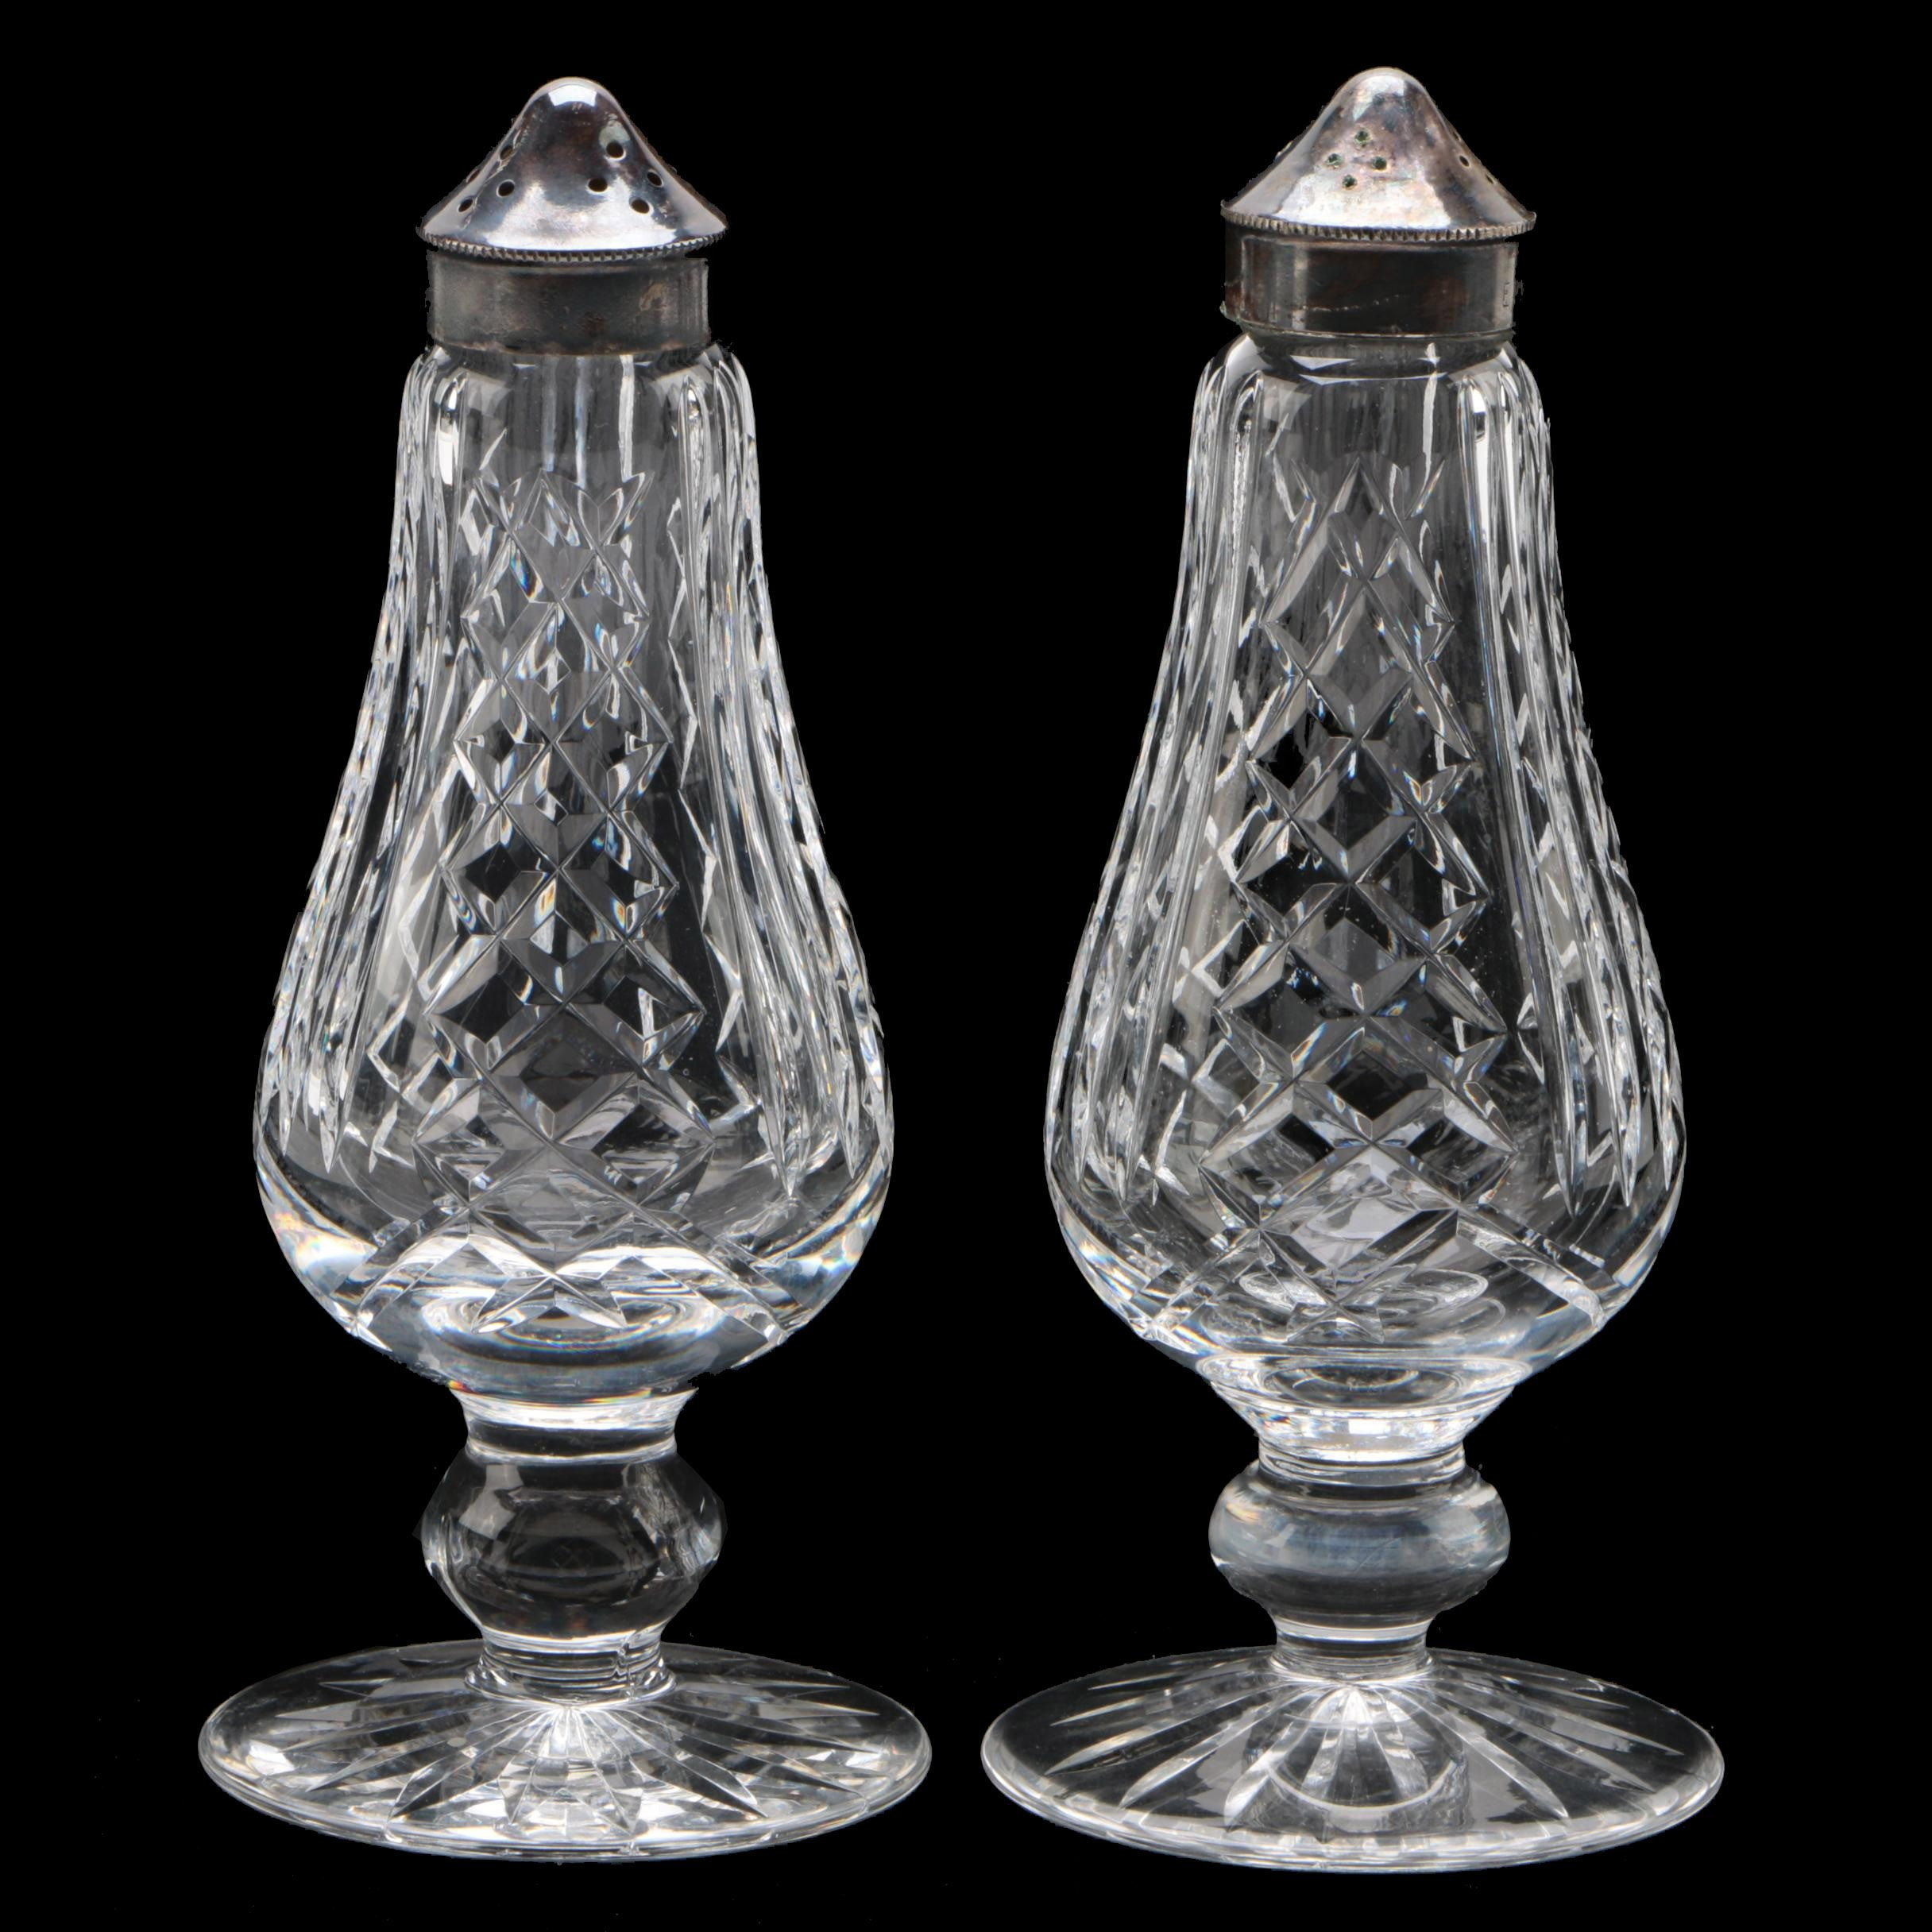 Waterford Crystal Salt and Pepper Shakers